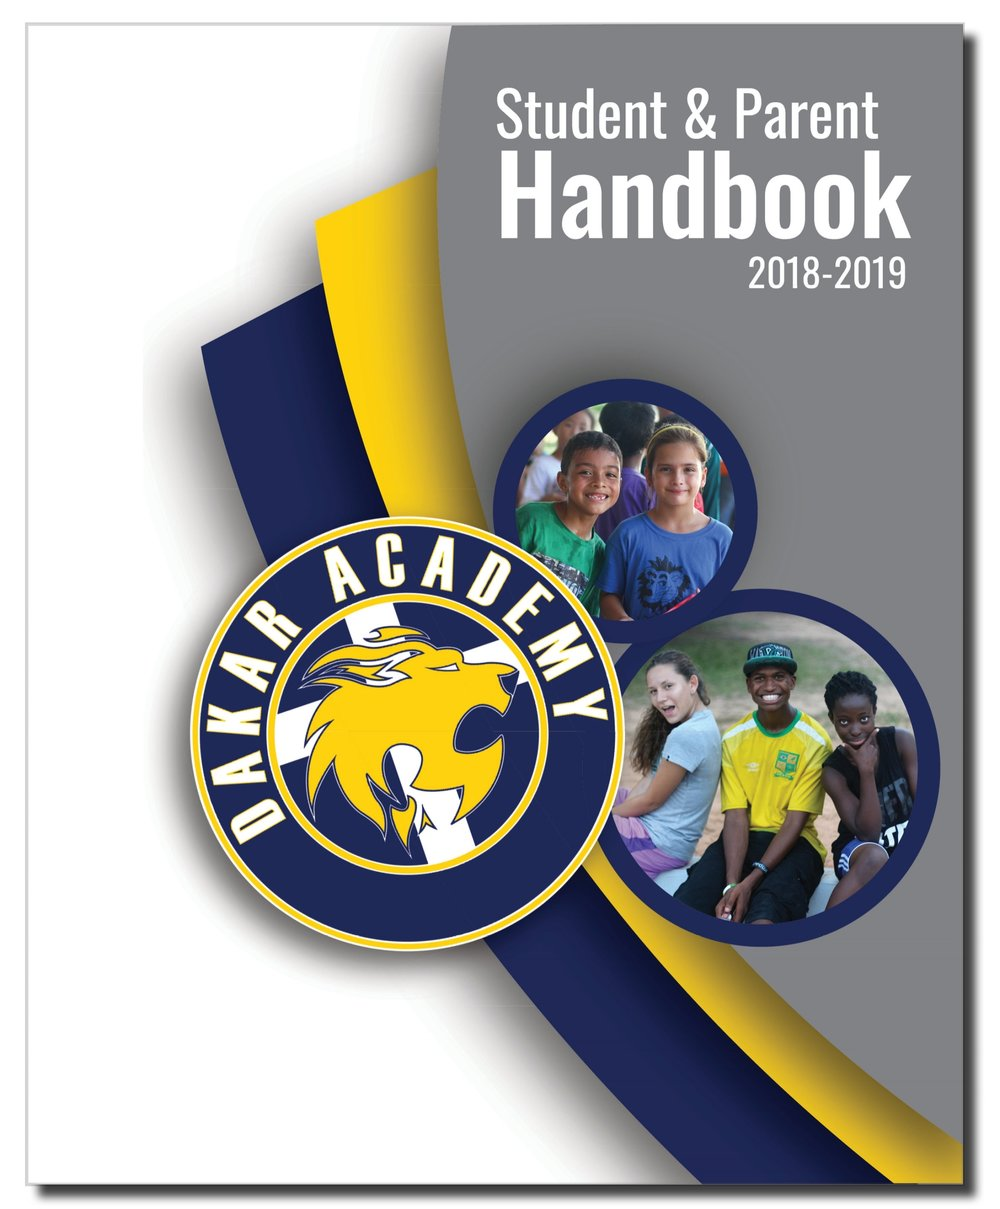 Dakar Academy's student handbook and education guidelines for a christian school serving families in West Africa and North Africa.